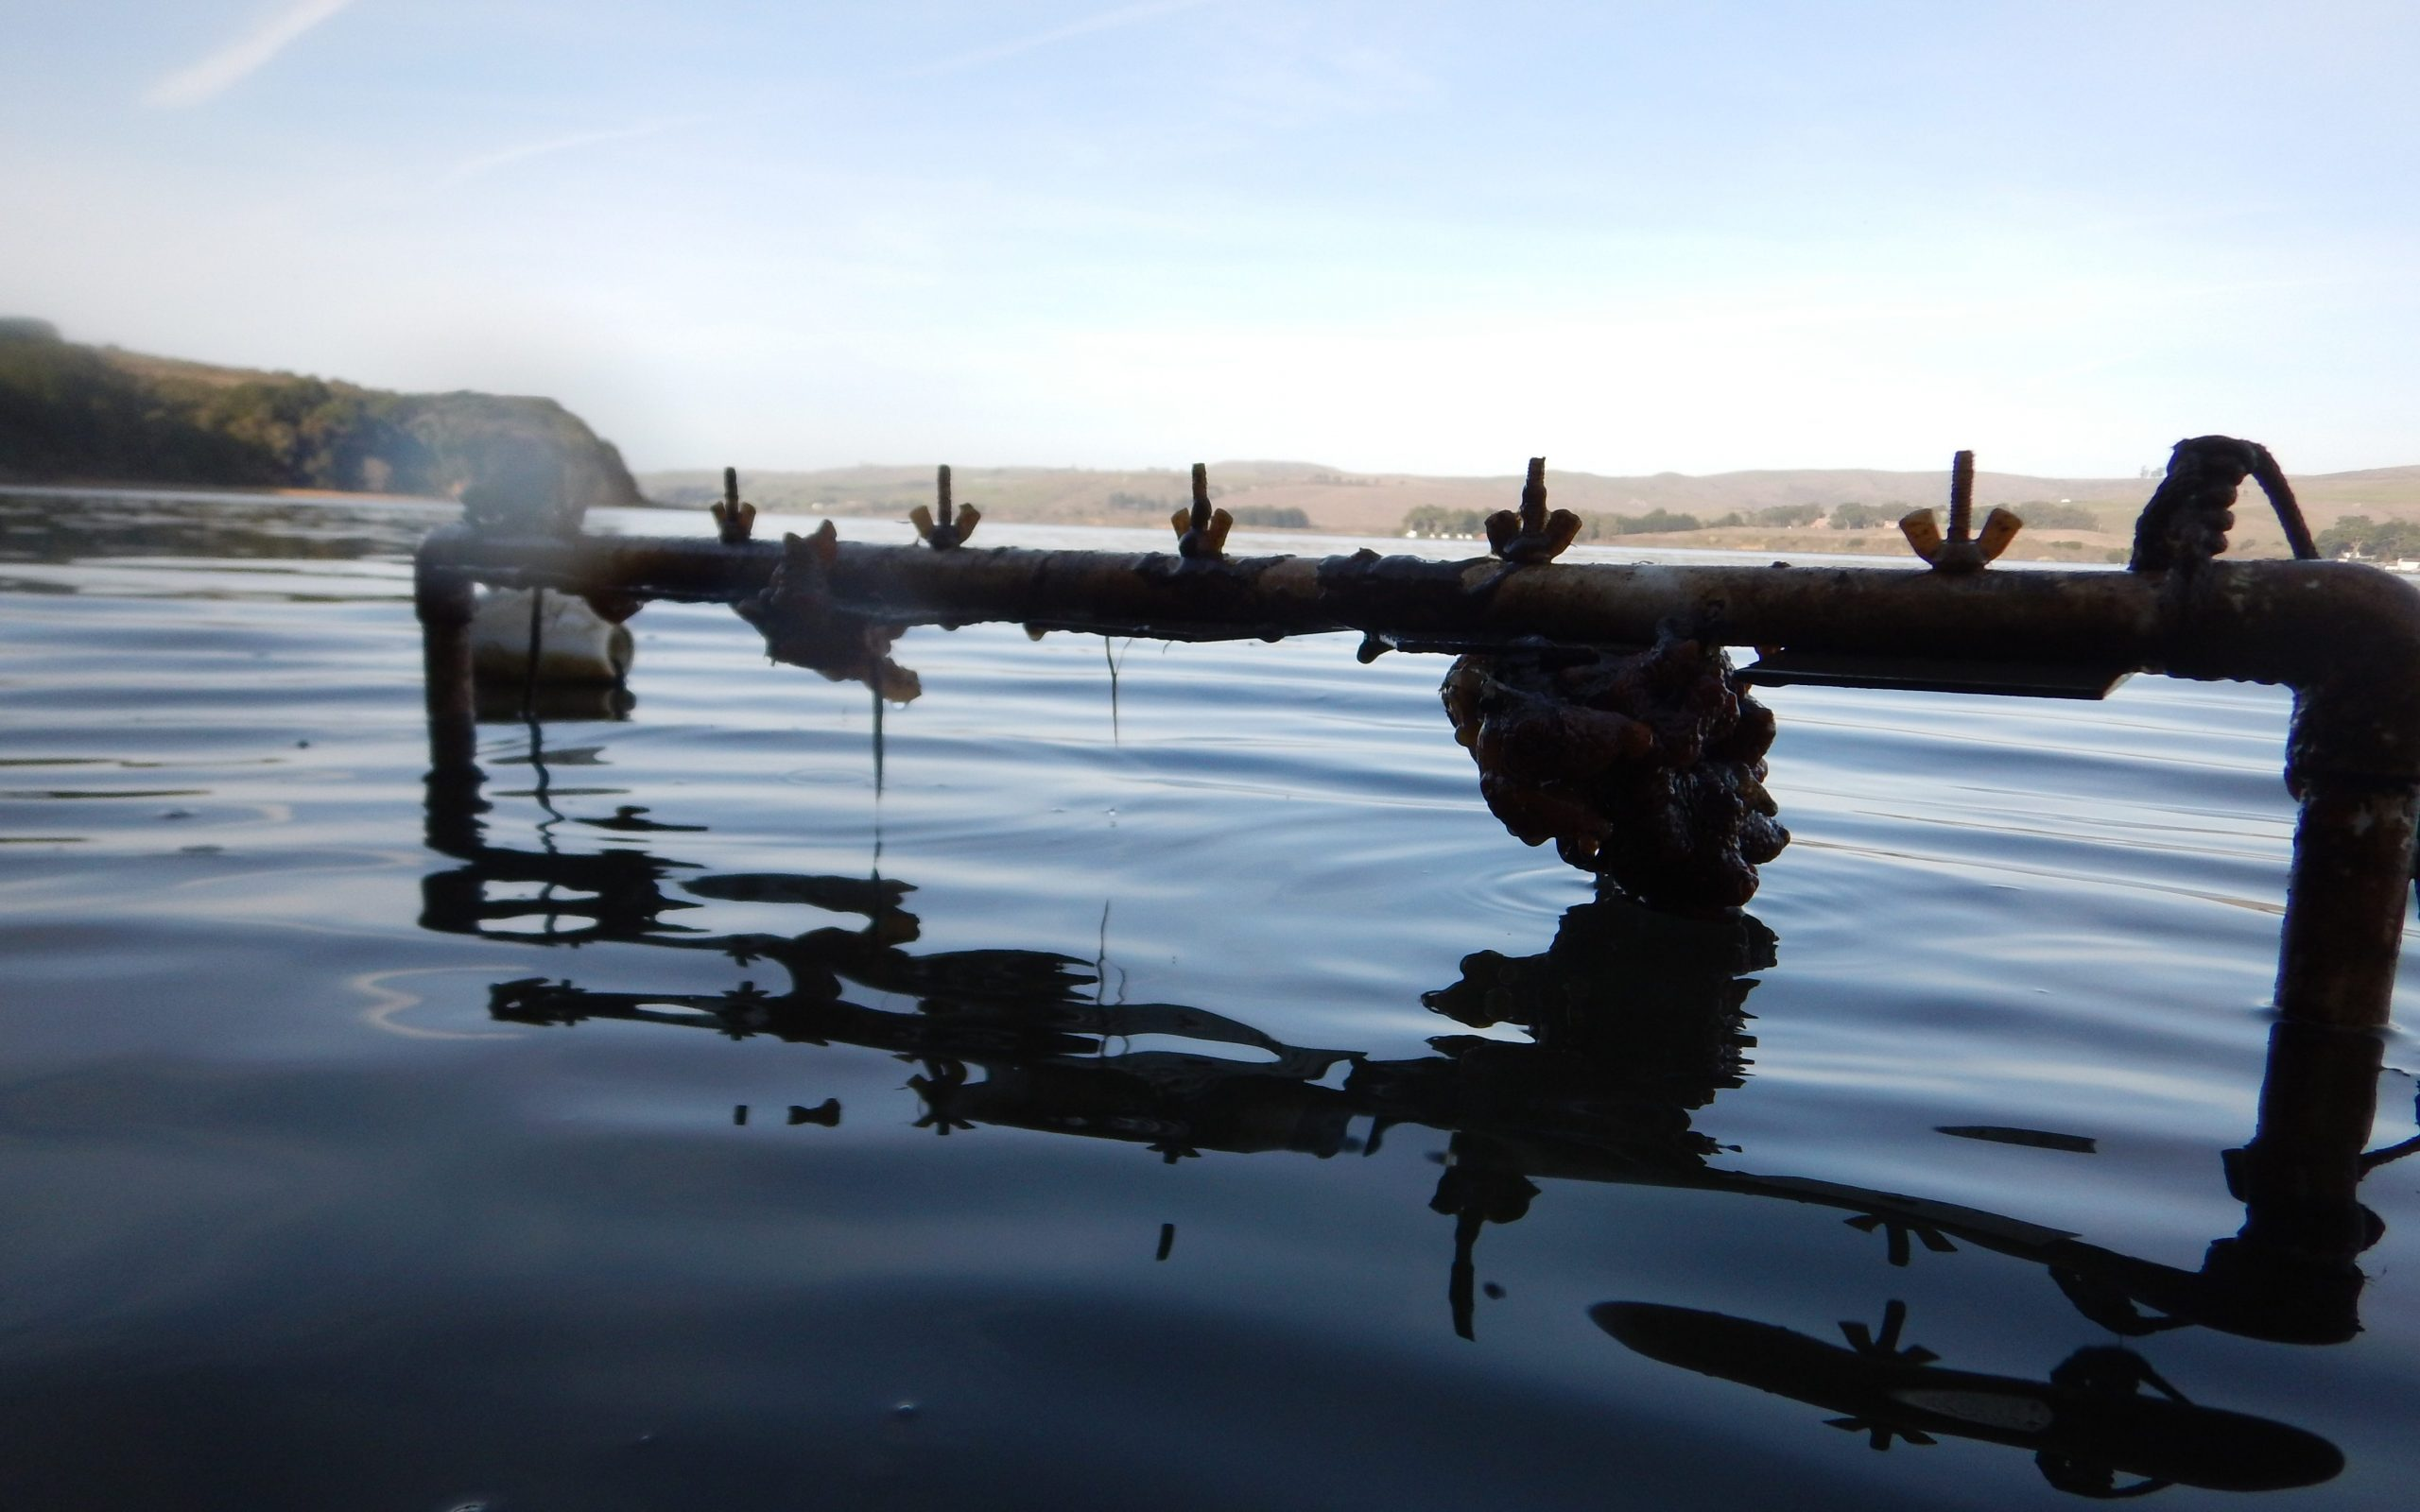 A PVC rack with settlement plates used to collect fouling species in Tomales Bay, California.